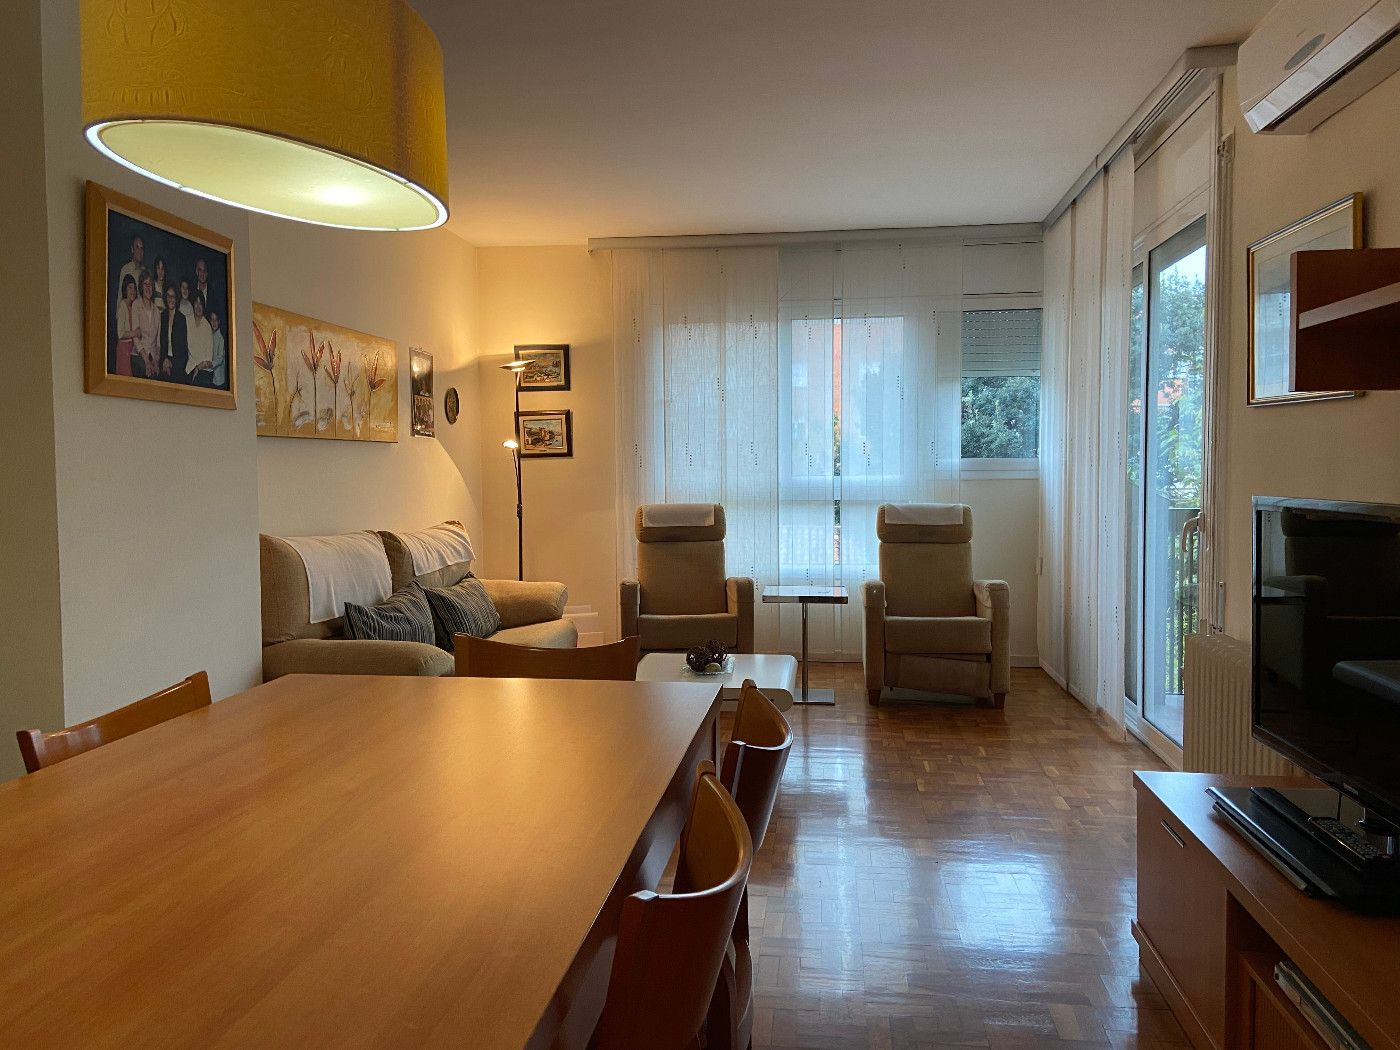 Location Appartement à Centre. Pk i traster